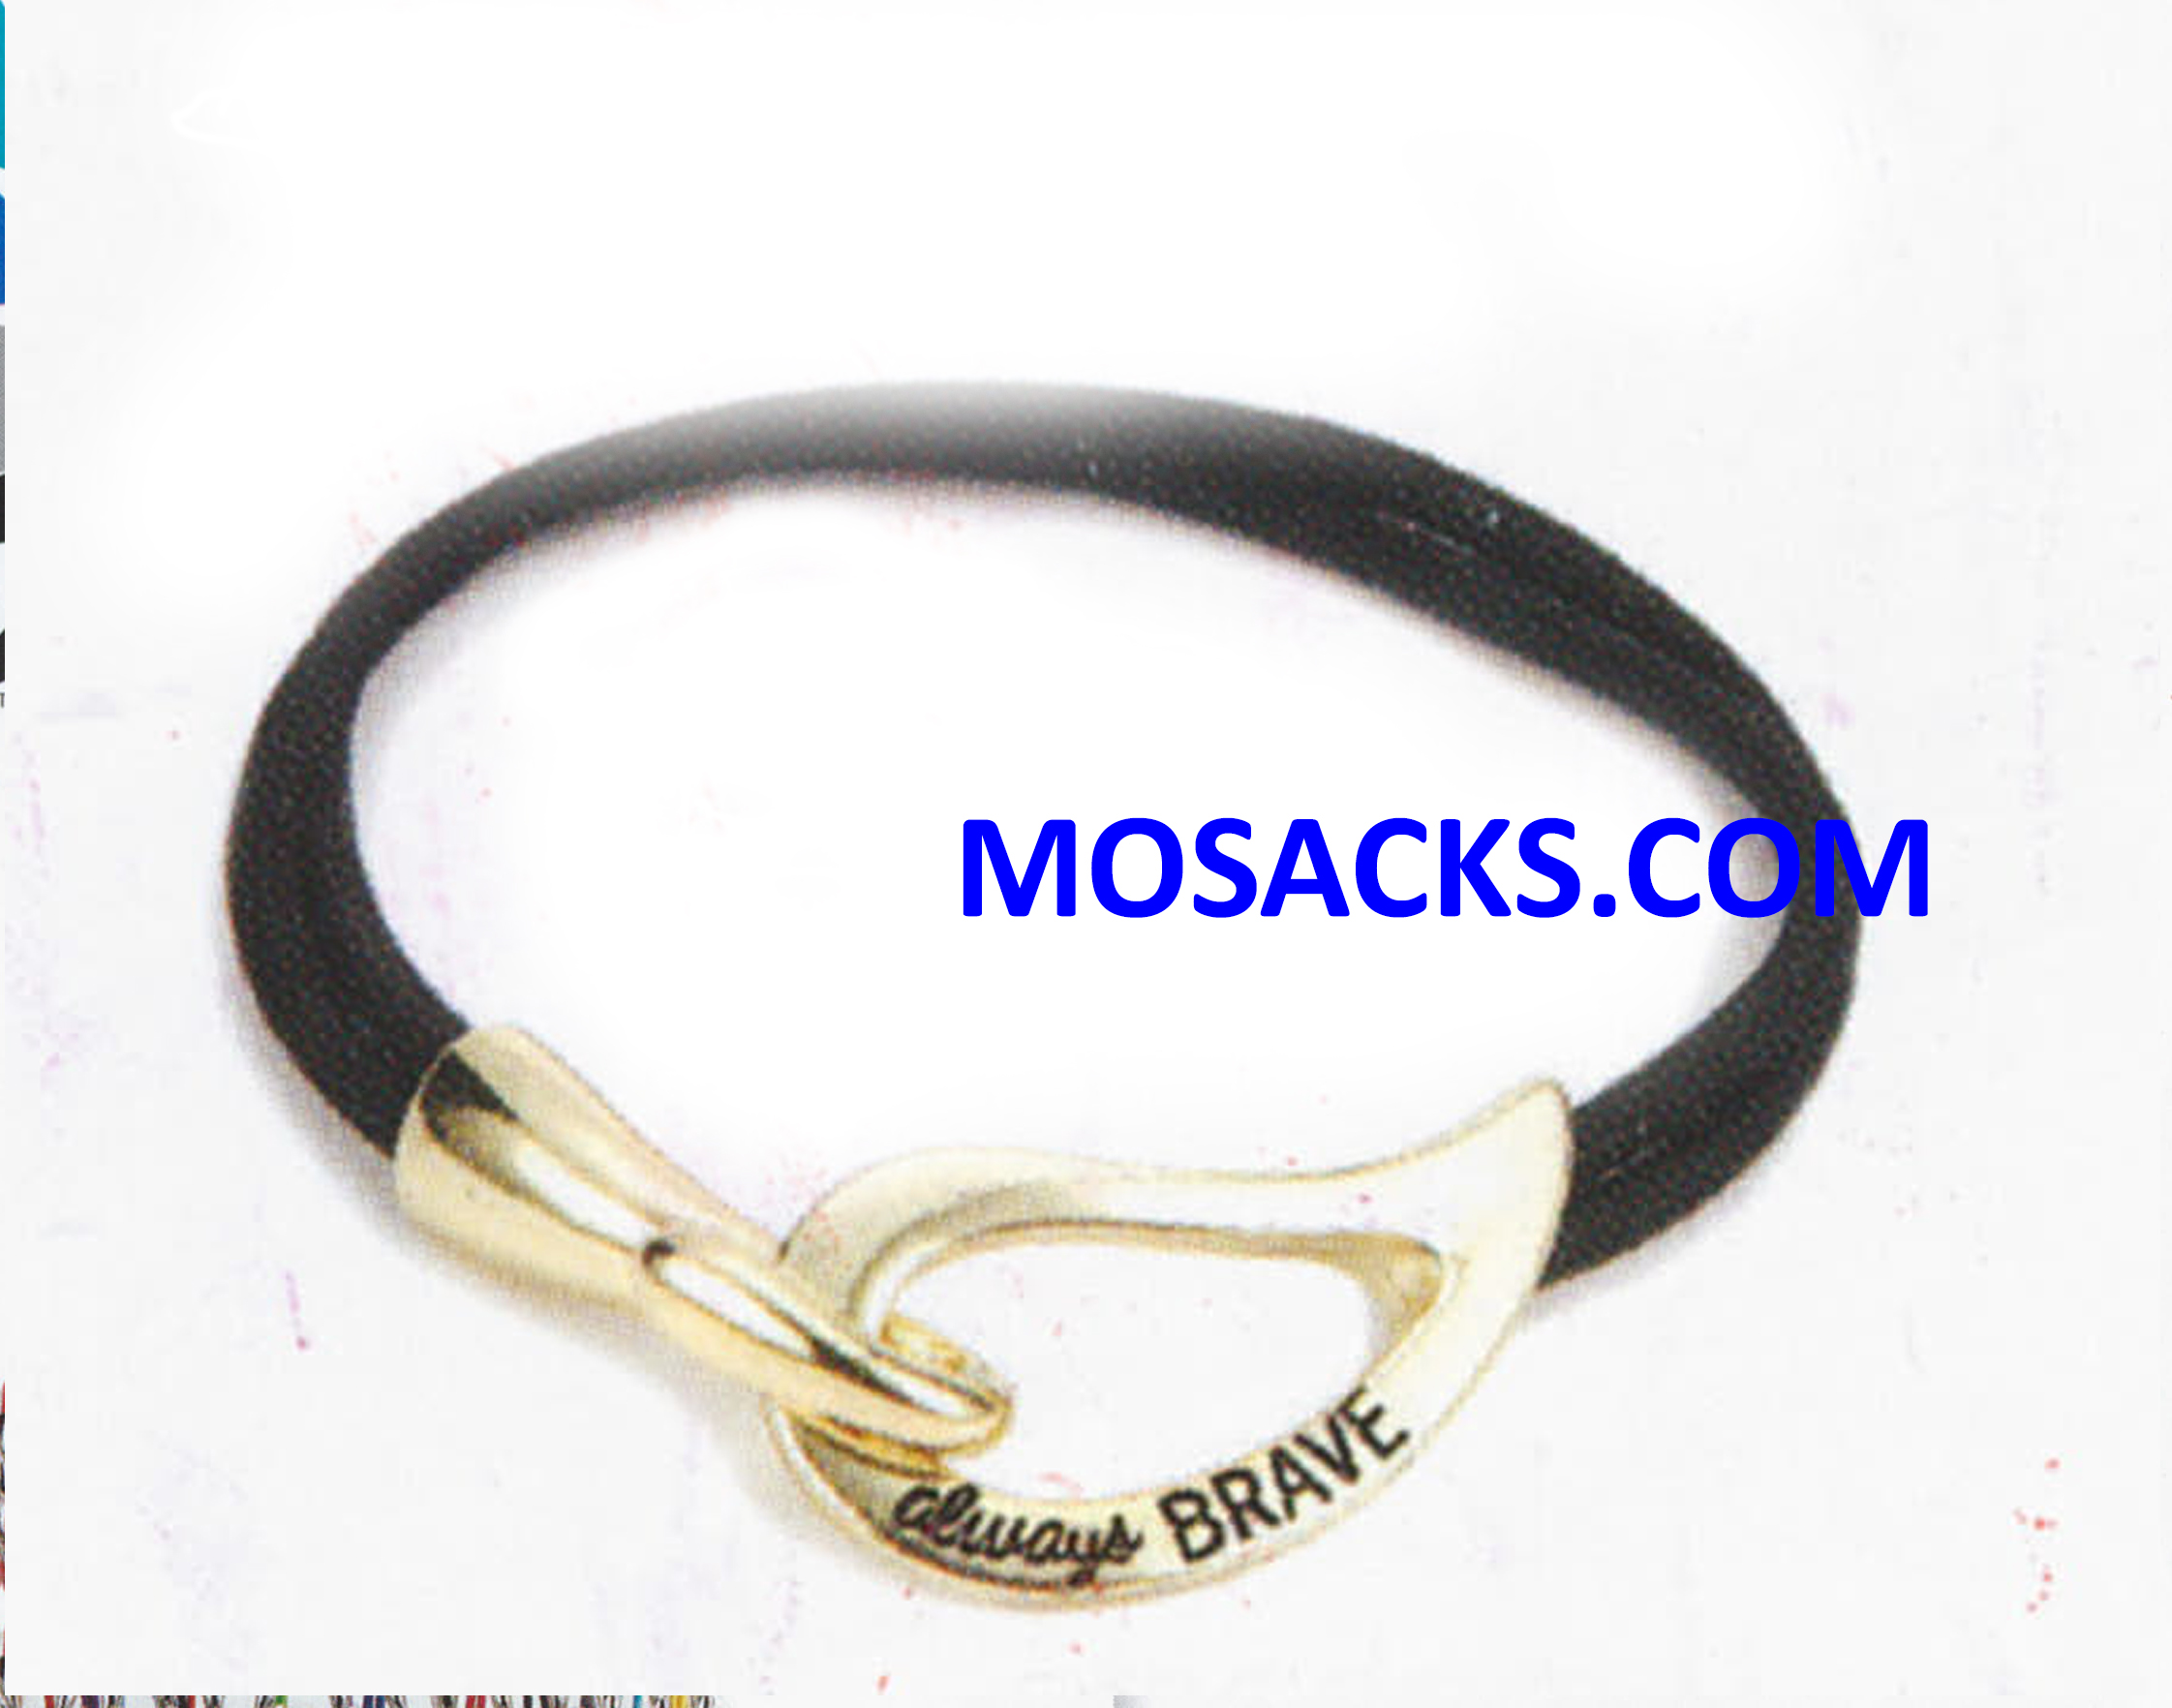 Always Brave Cancer Awareness Bracelet Gold Black 452-220847